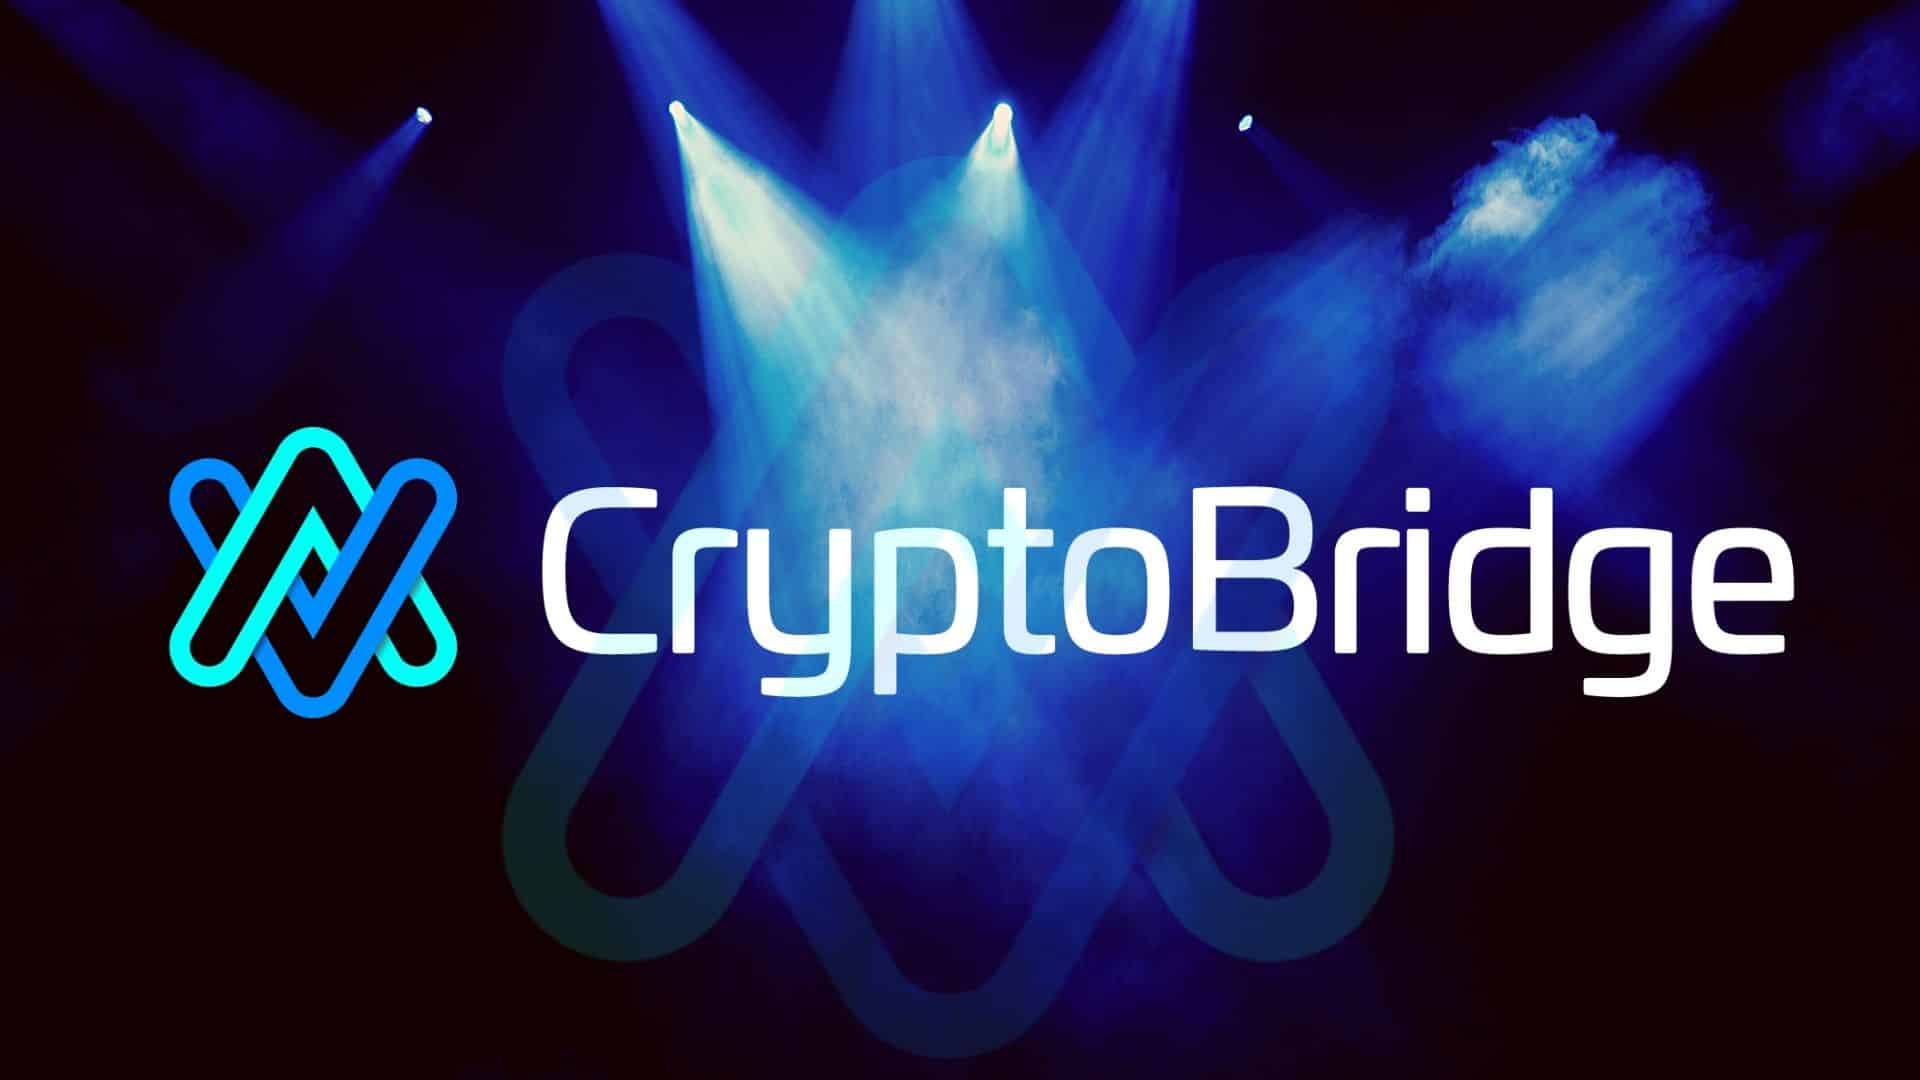 CryptoBridge Decides to Shut Down Operations